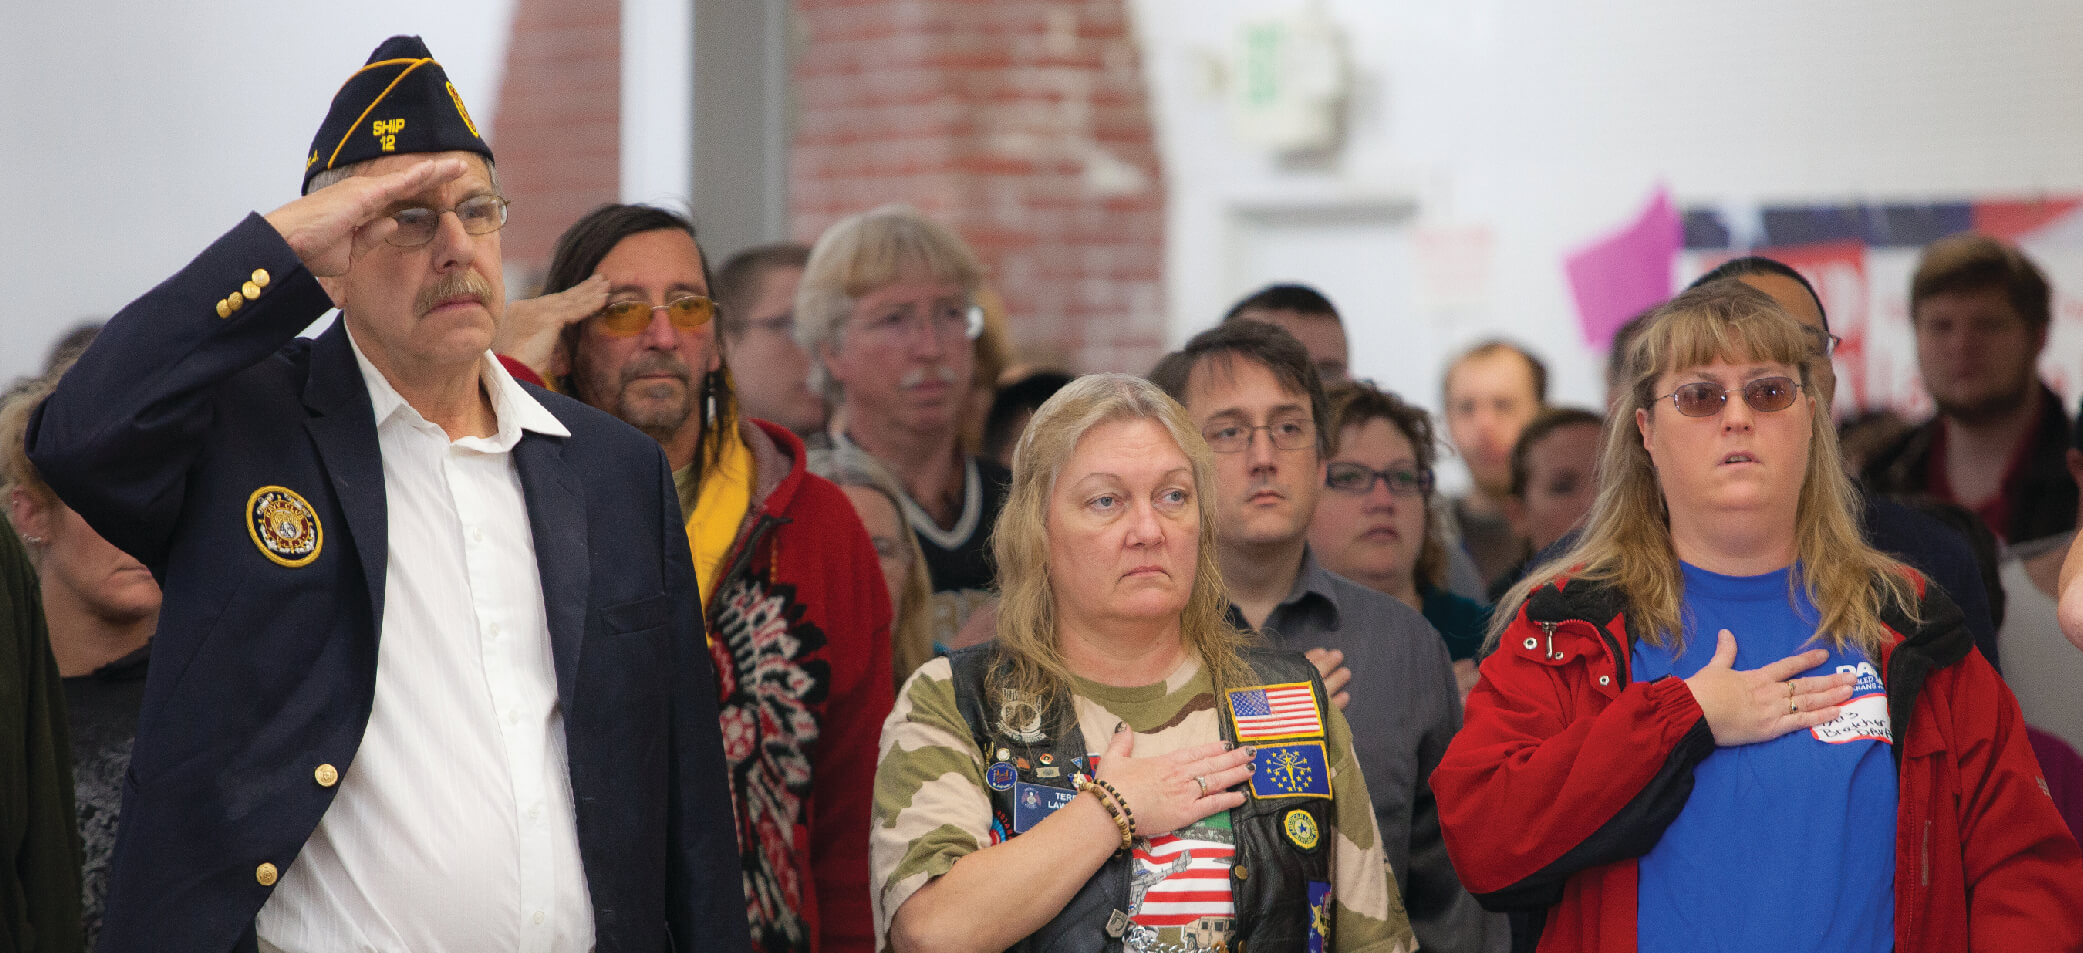 Veterans and volunteers salute the flag at a Stand Down